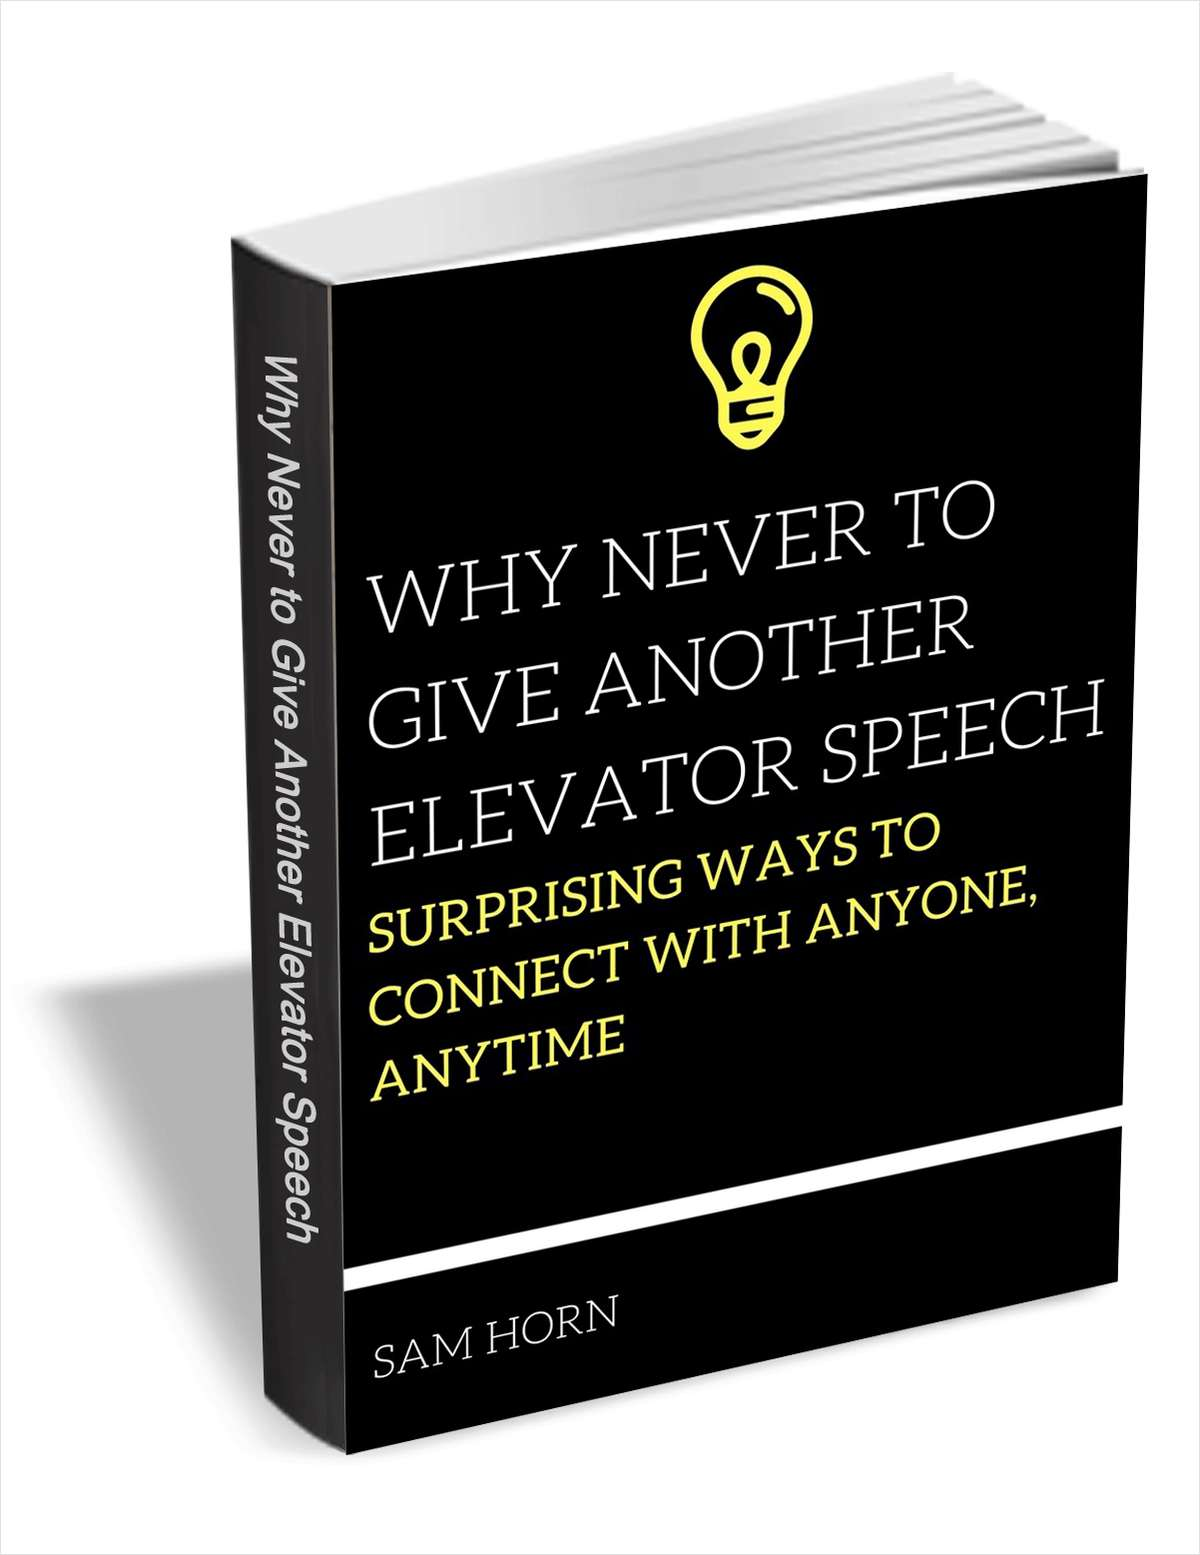 Why Never to Give Another Elevator Speech - Surprising Ways to Connect with Anyone, Anytime